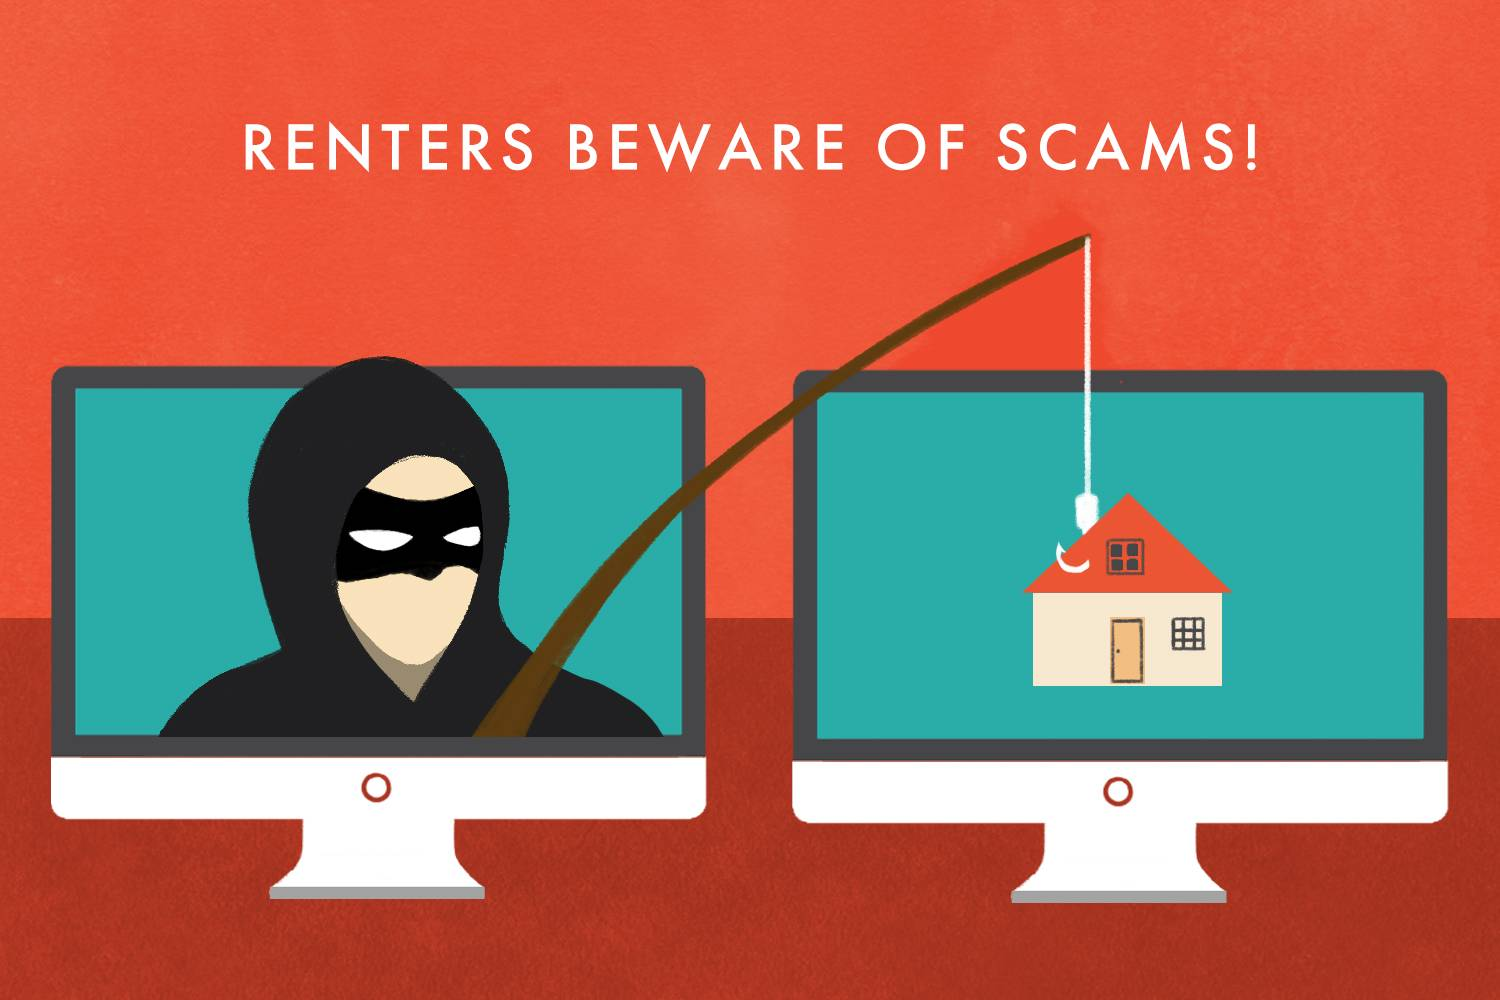 Rental Scams: Important Tips for Online Safety